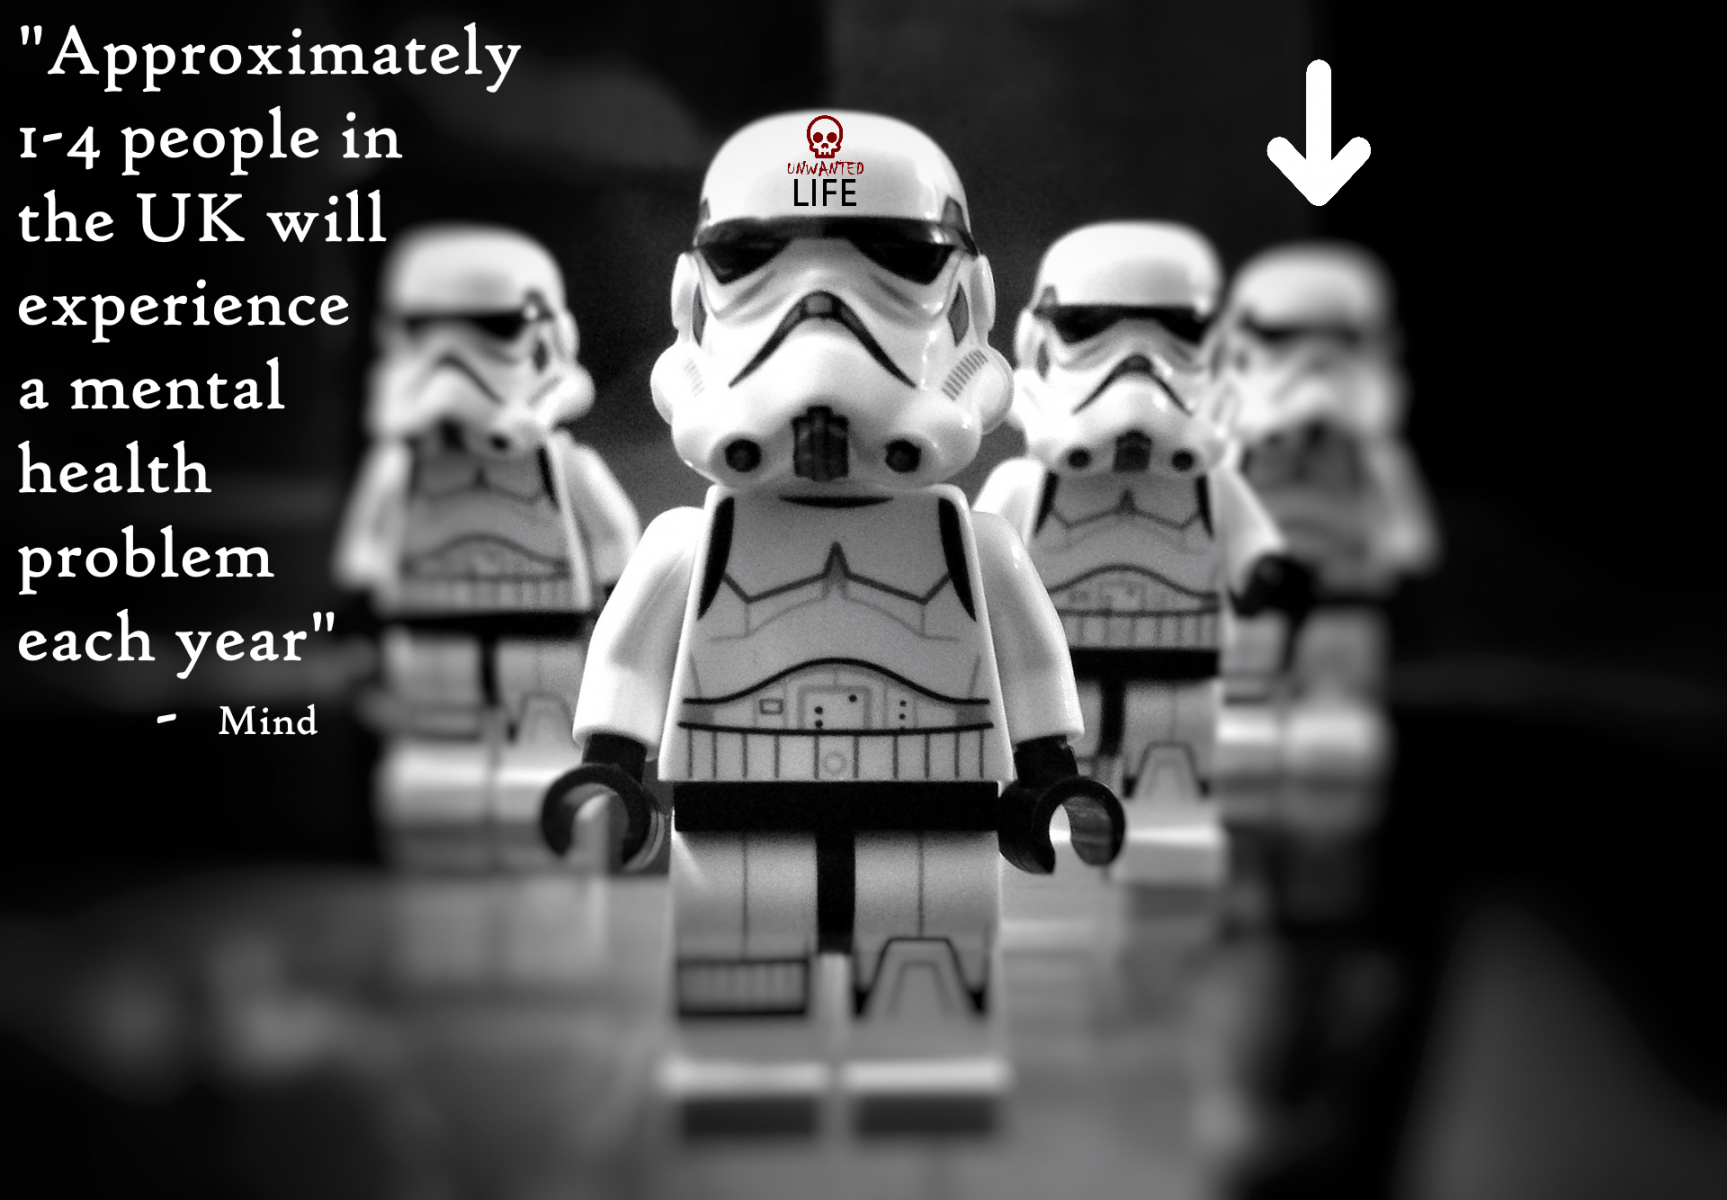 Star Wars 1 in 4  Mental Health Unwanted Life | Mental Health and Wellness